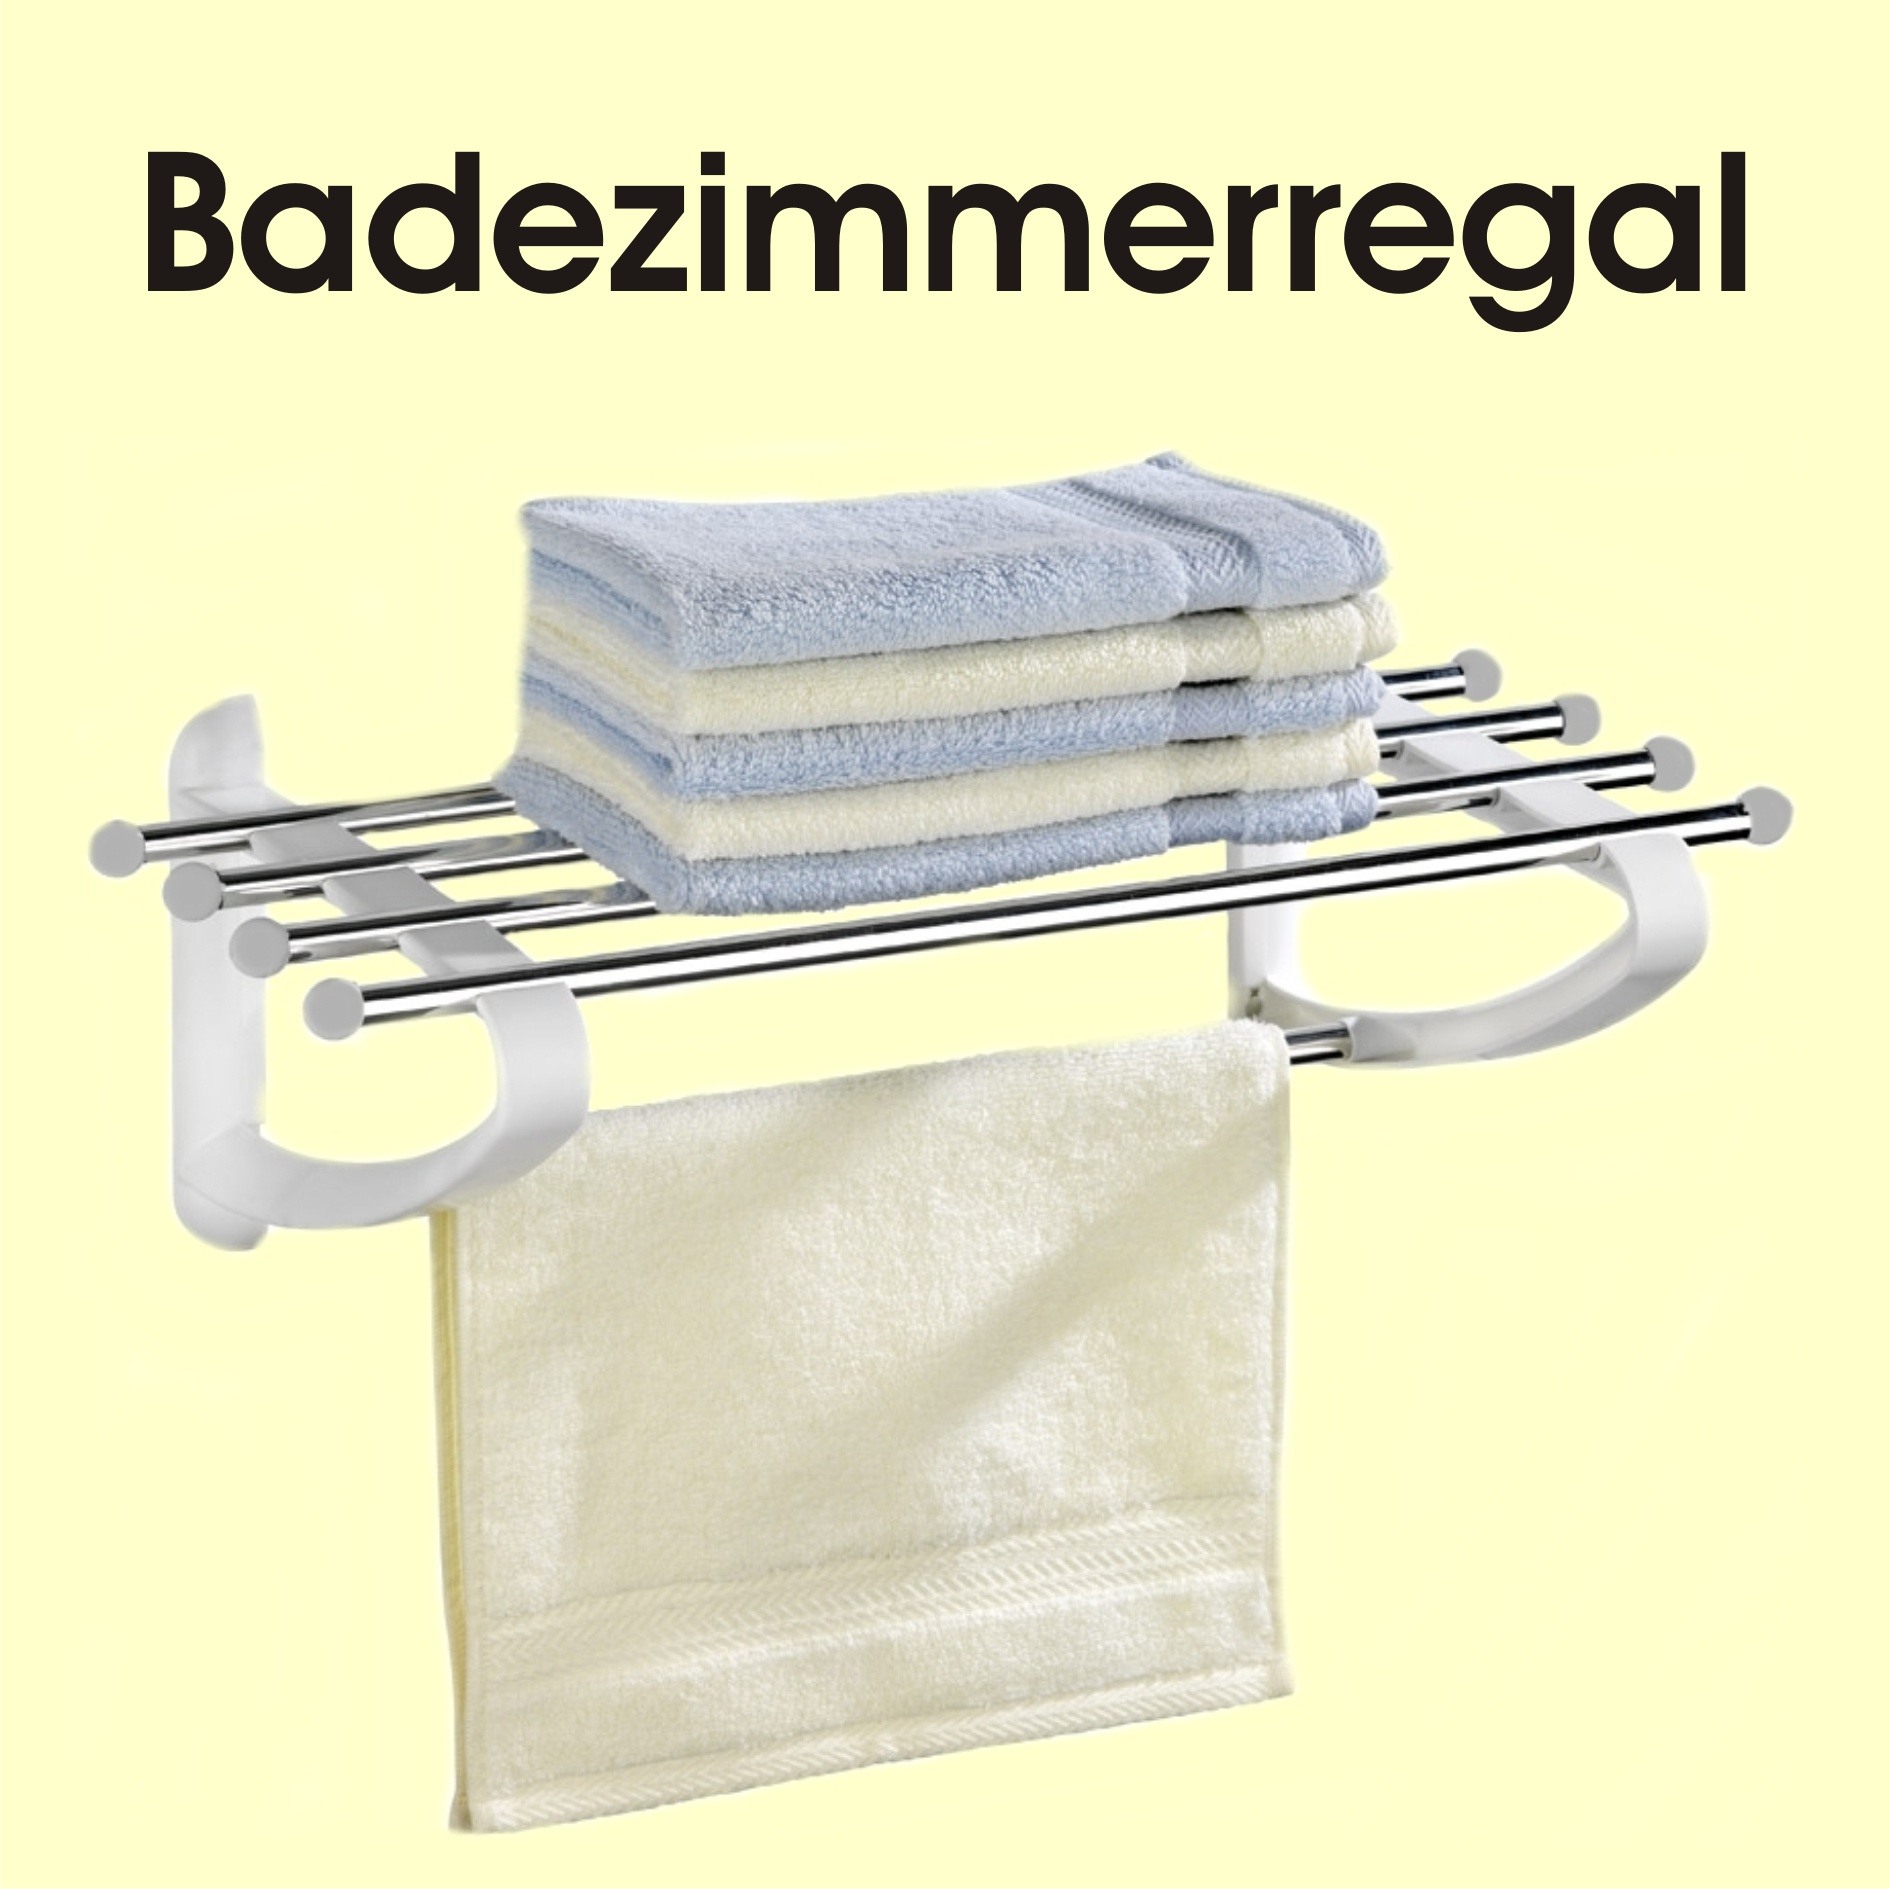 Badregal